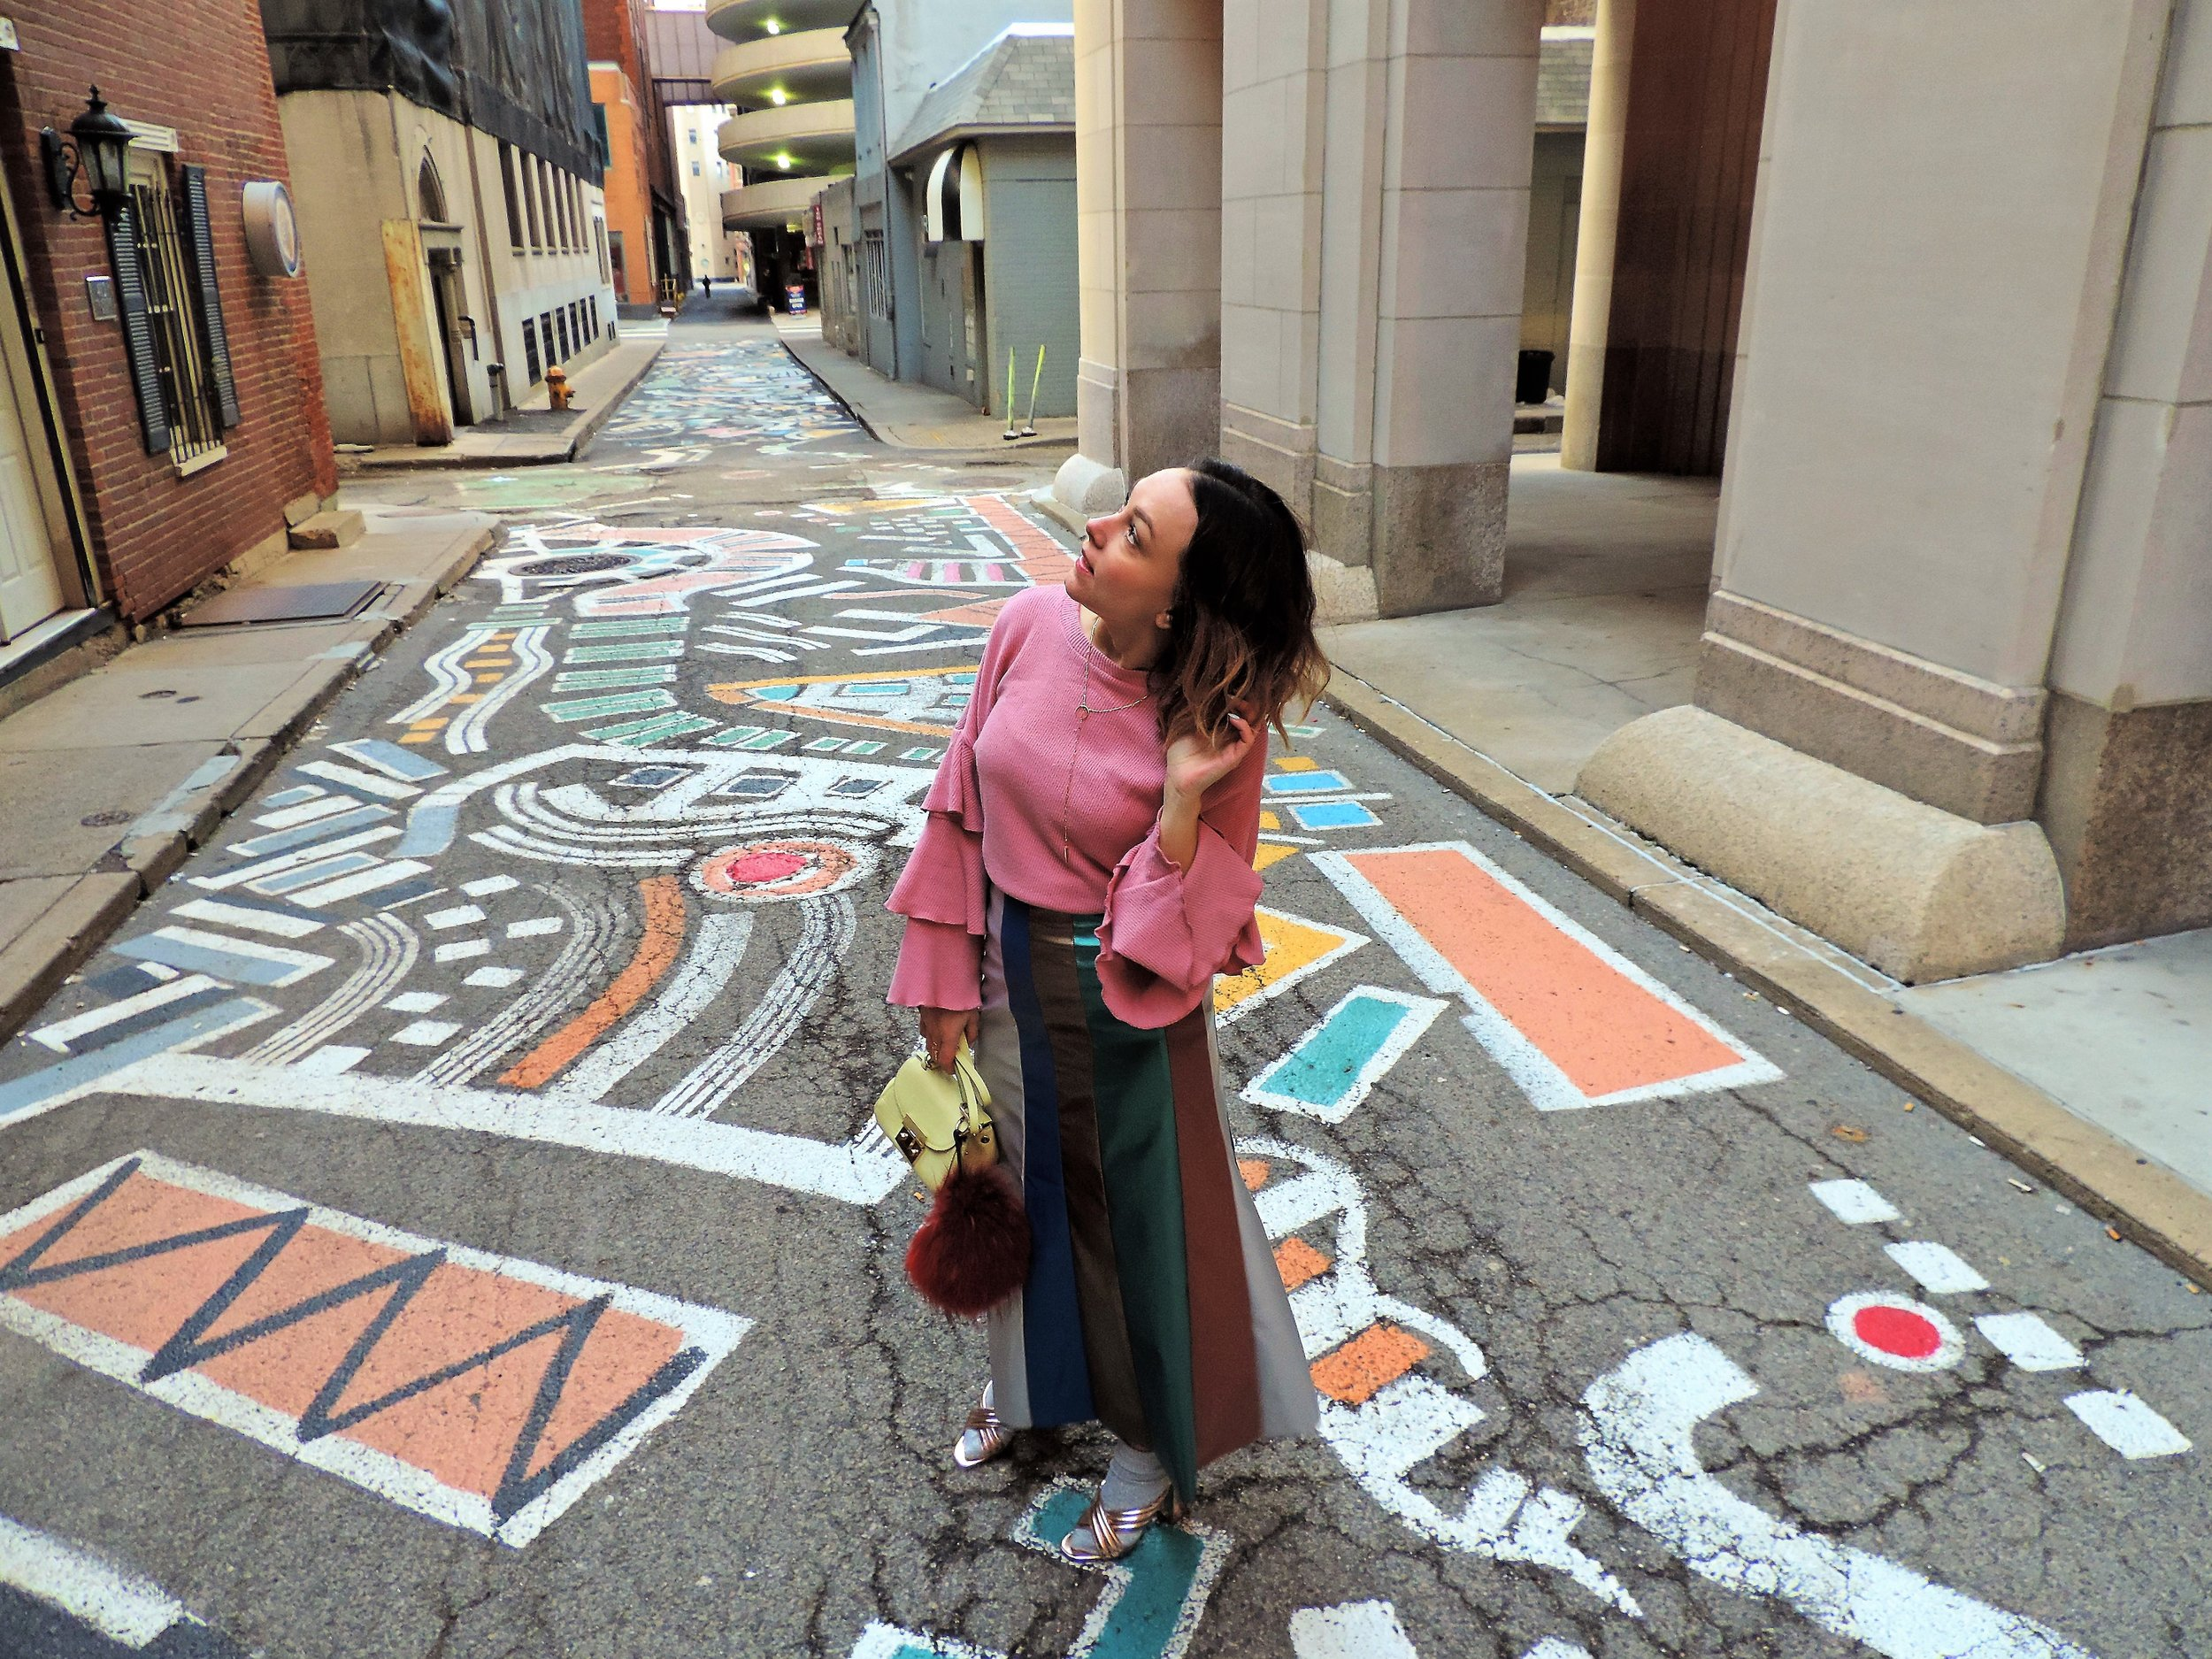 colorful streets in downtown pittsburgh